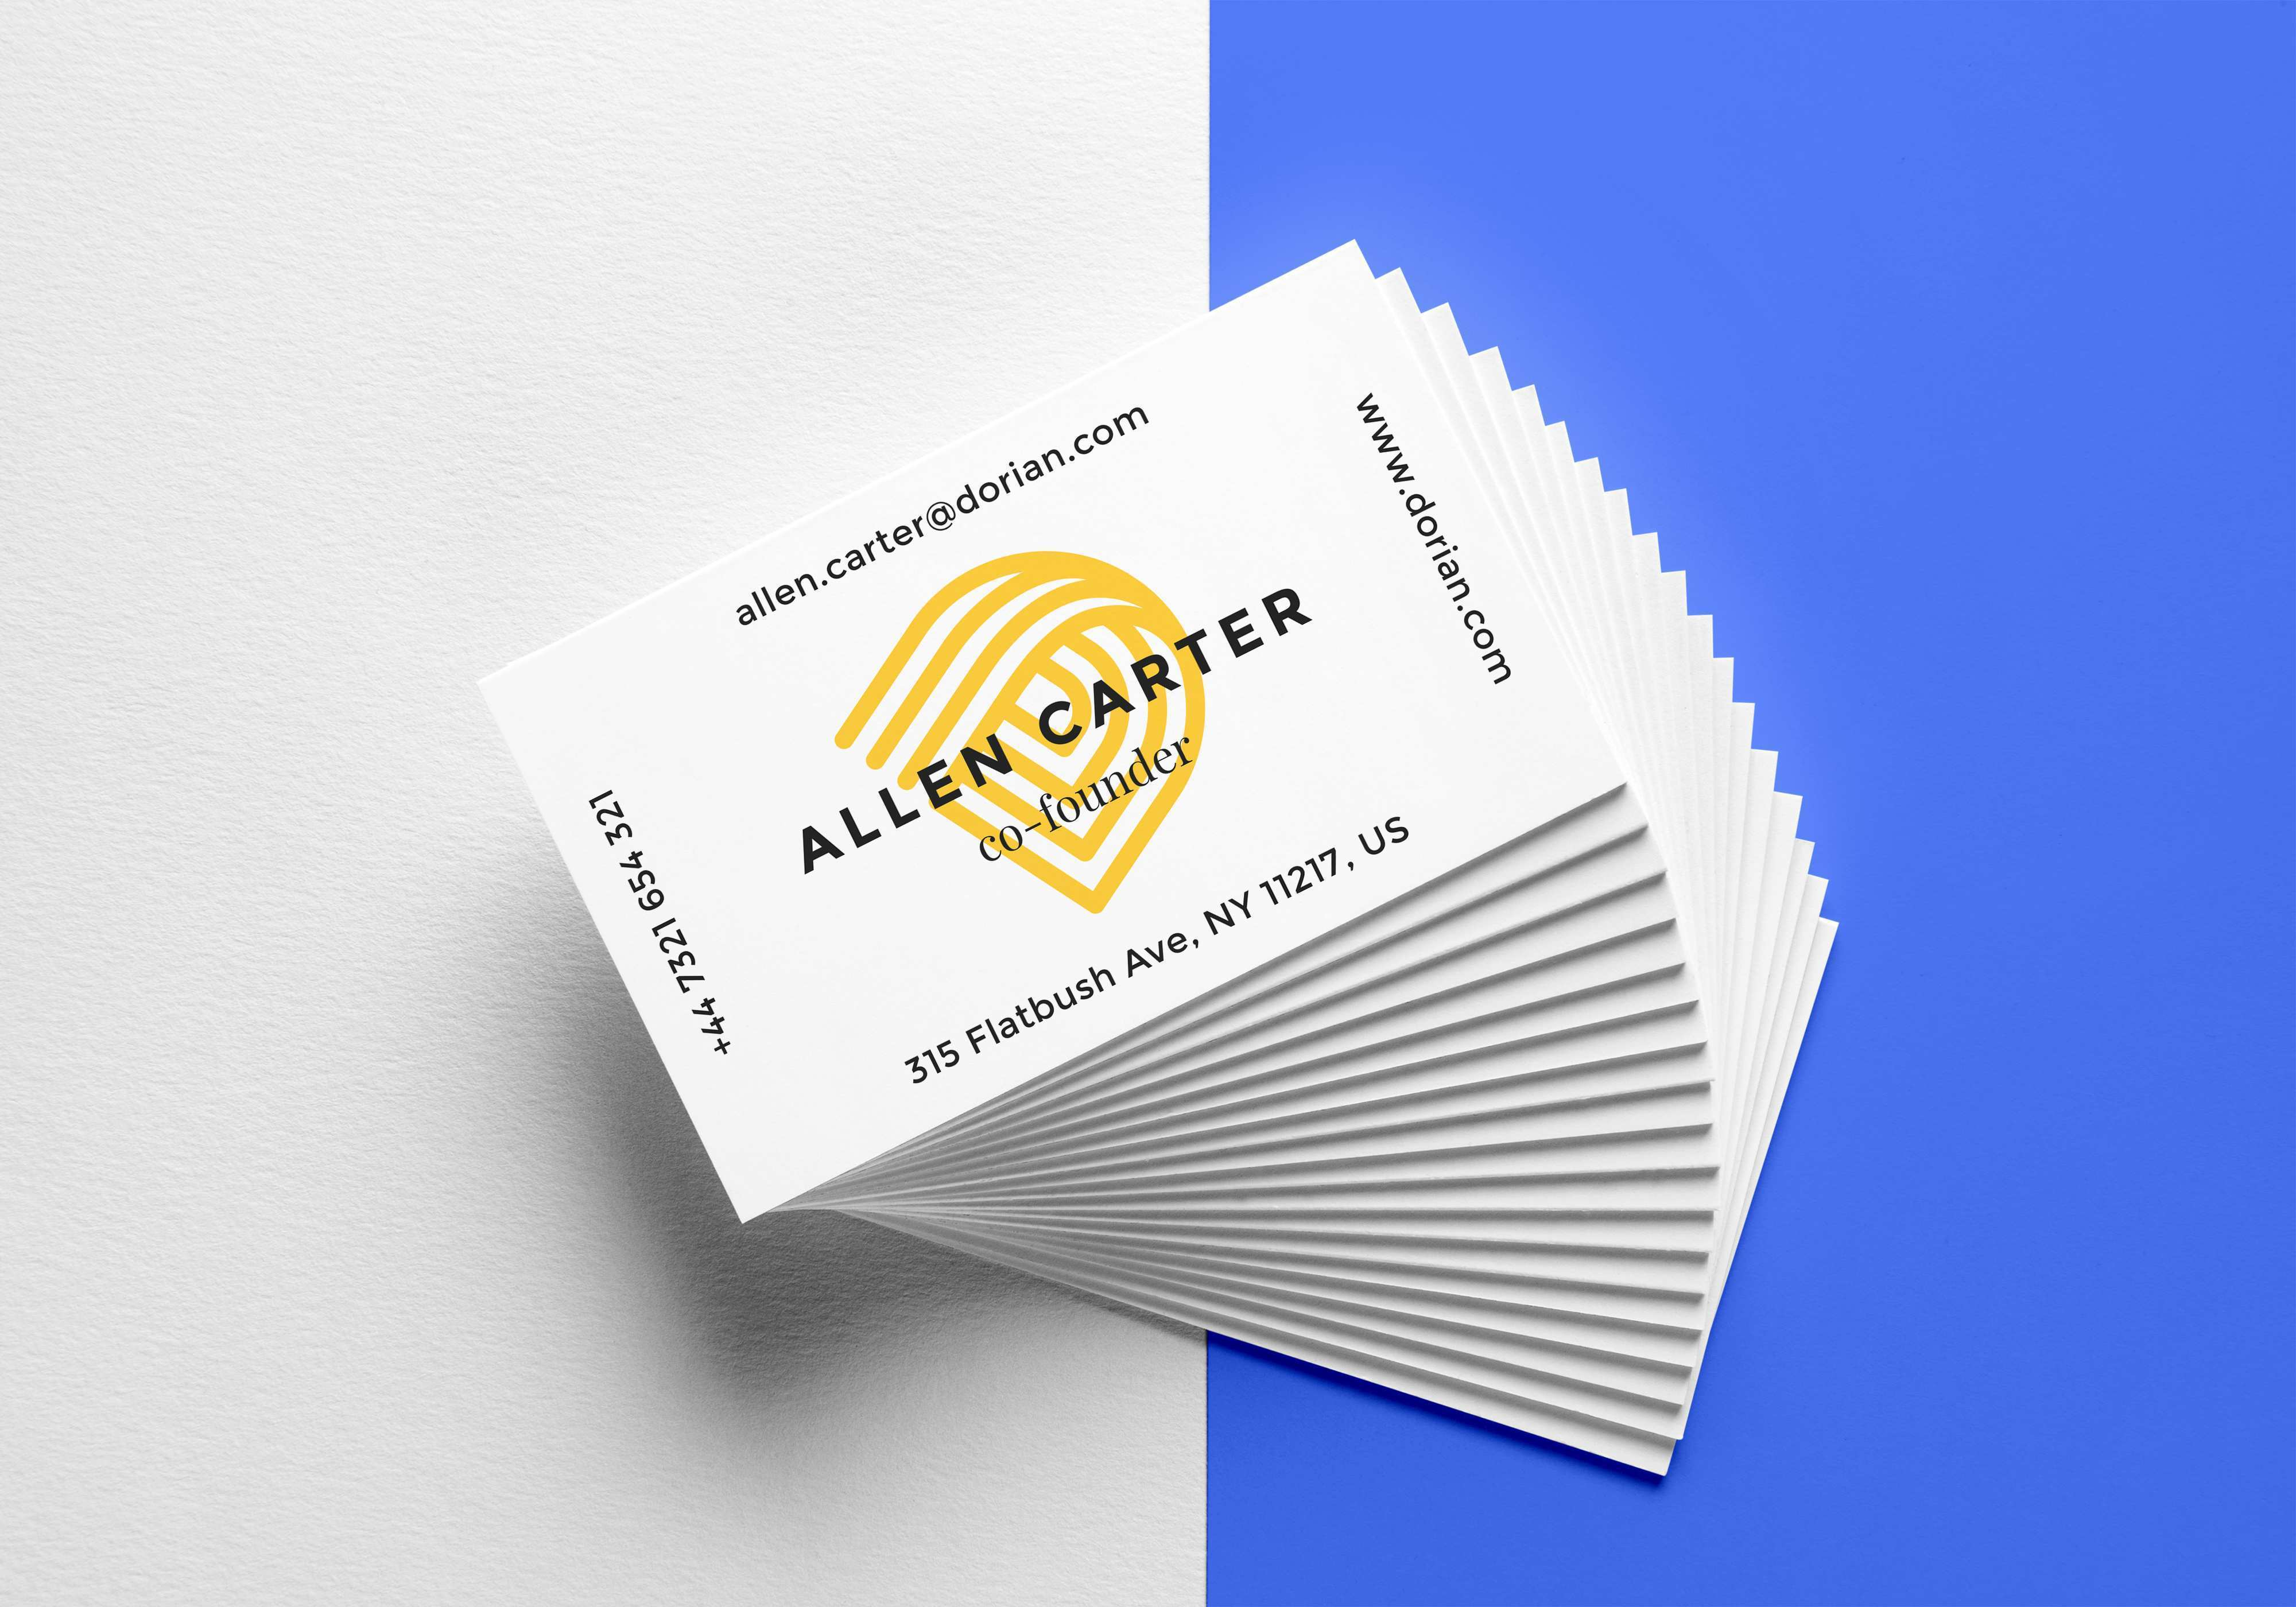 60 Visiting Business Card Mockup Template Illustrator Maker with Business Card Mockup Template Illustrator